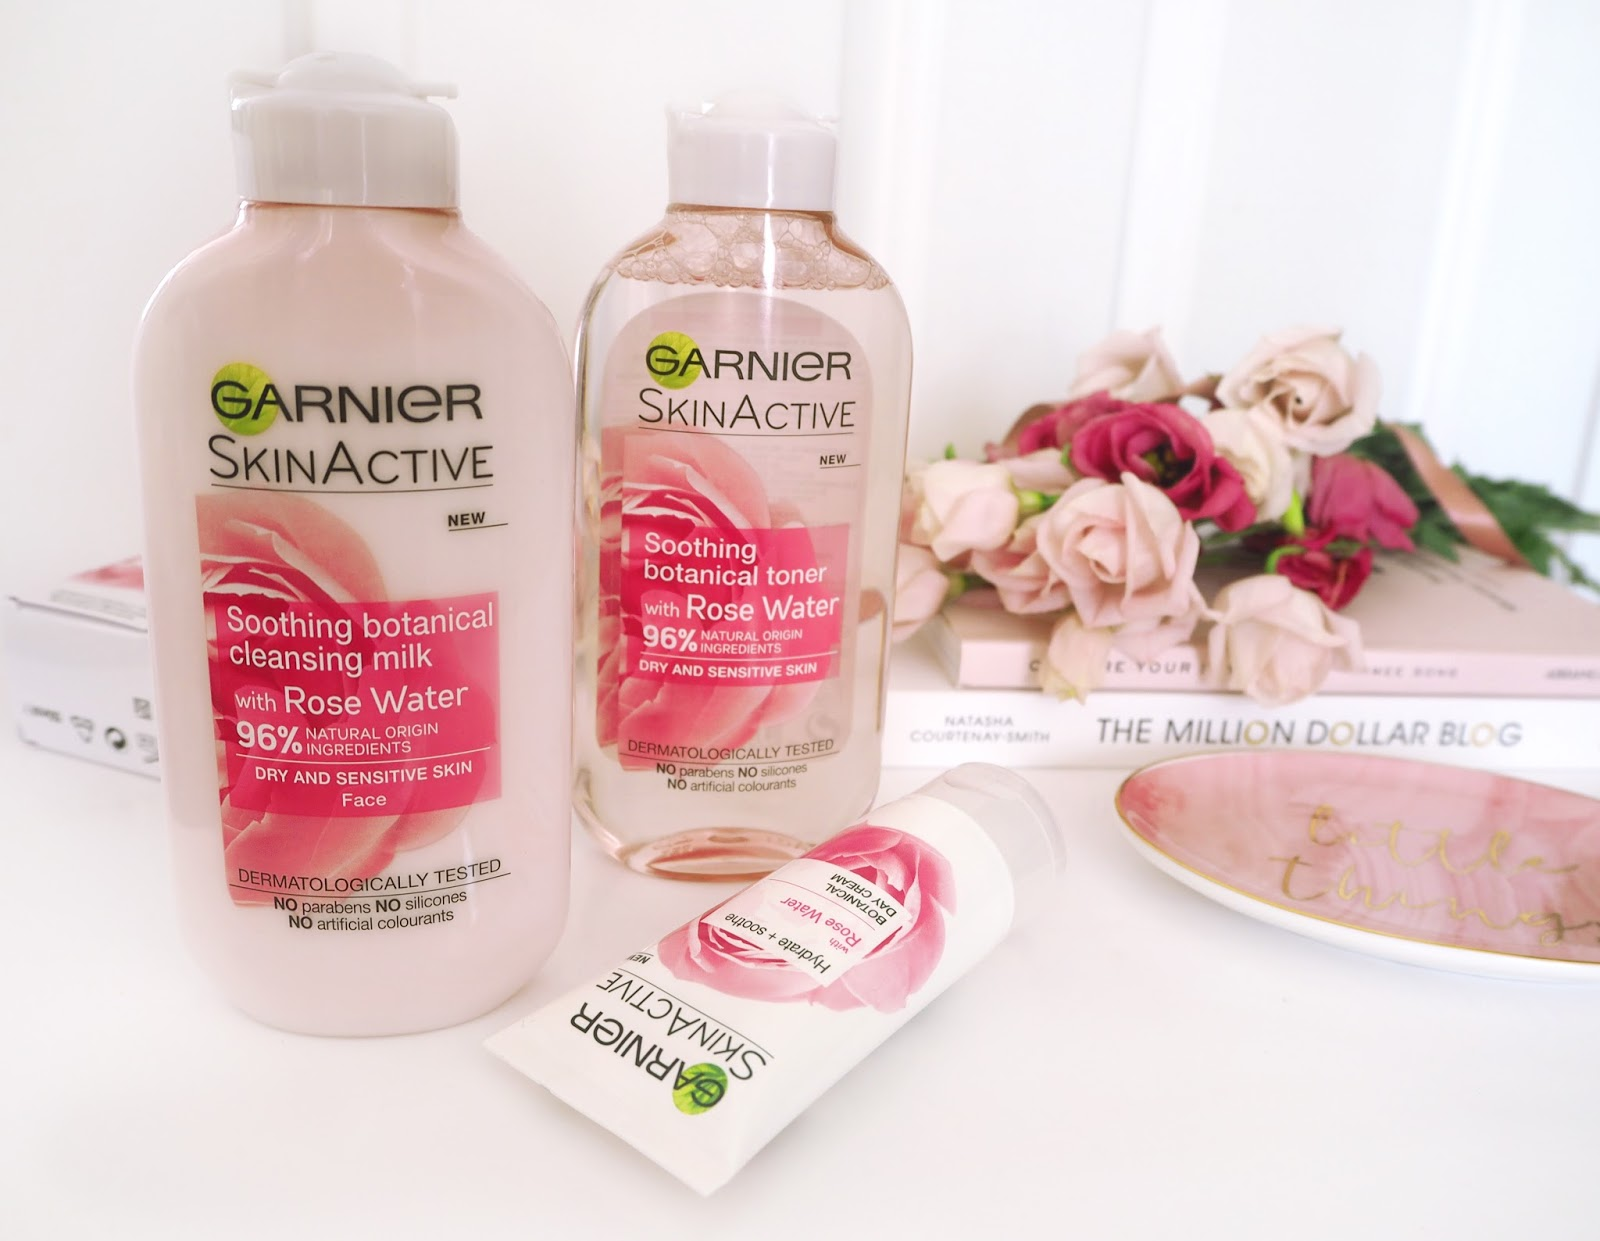 Garnier Skin Active Collection, Katie Kirk Loves, UK Blogger, Beauty Blogger, Skincare Blogger, Rose Water, Beauty Review, Skincare Review